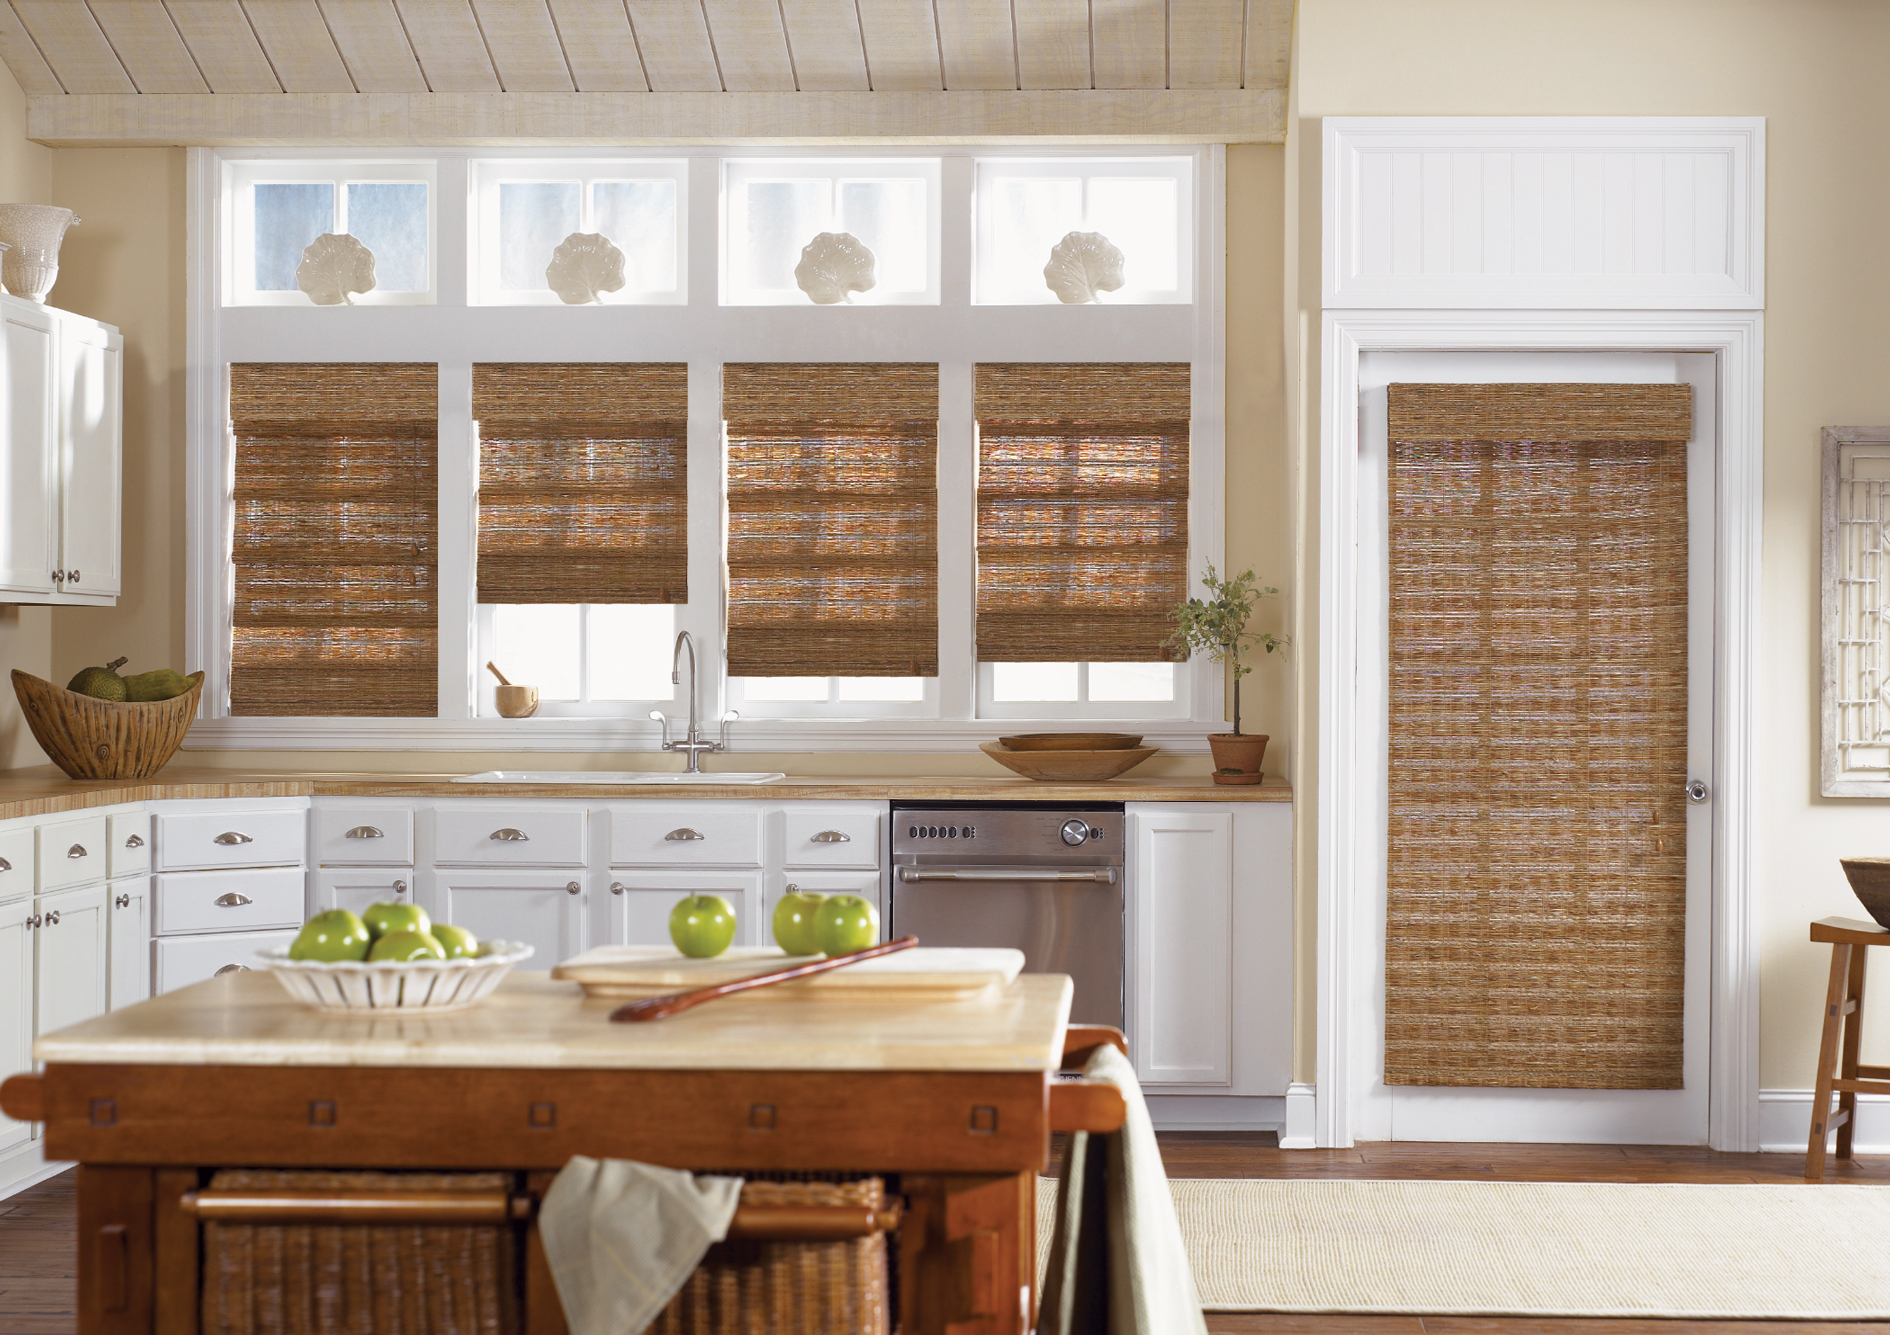 Woven wood shades for small windows